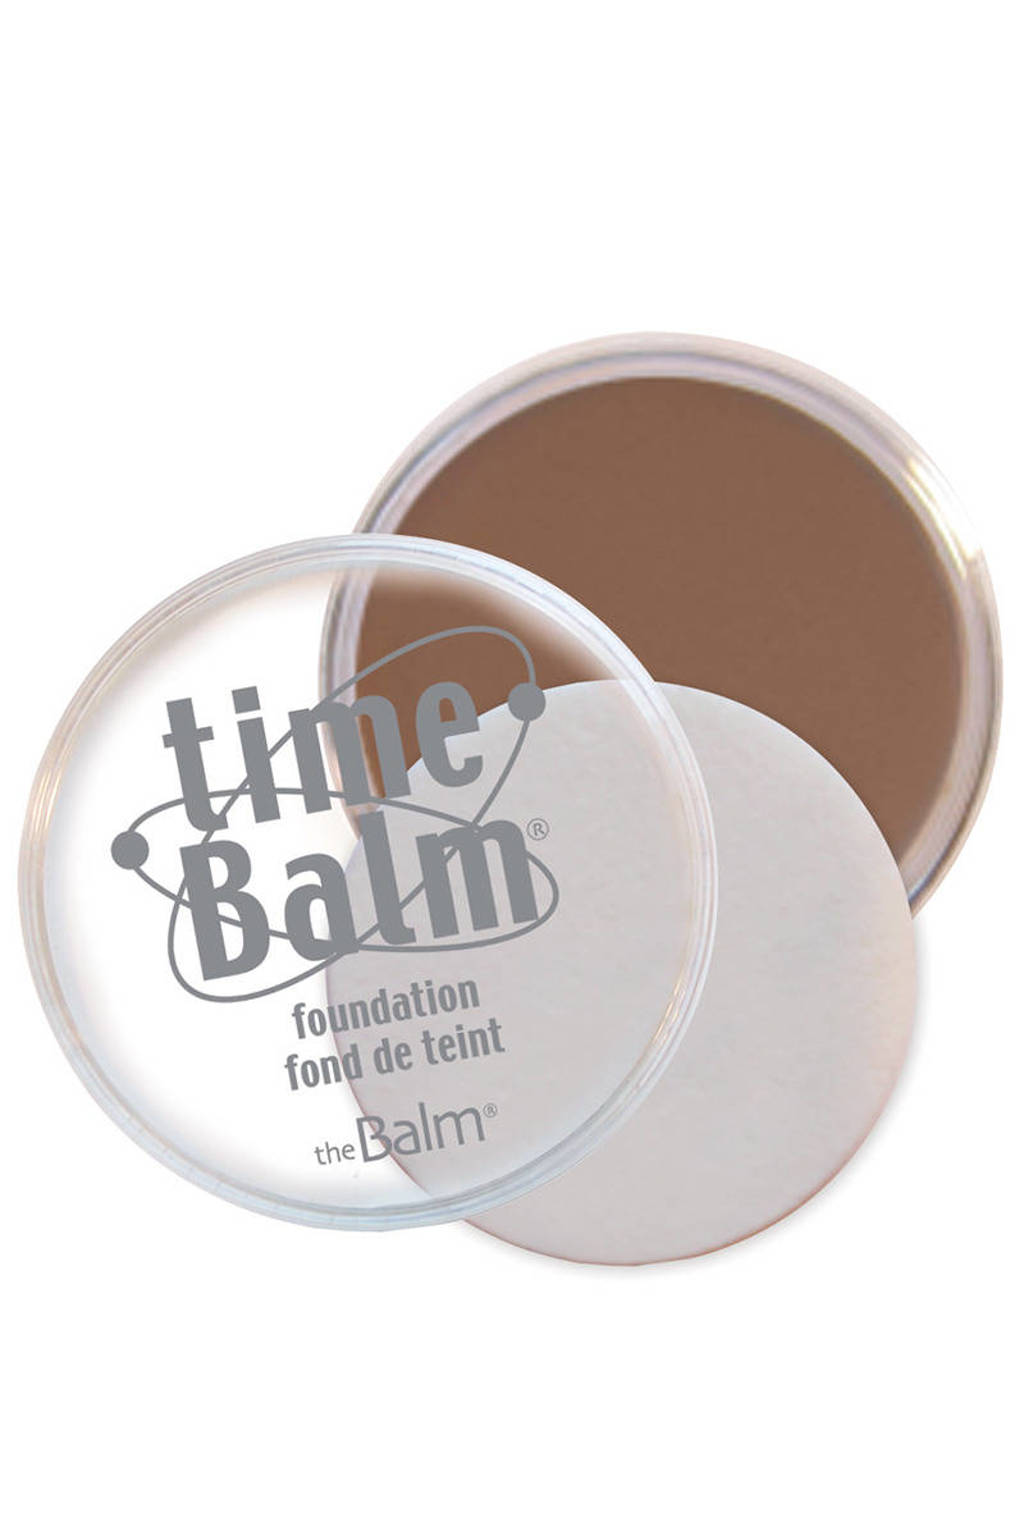 The Balm timeBalm foundation - Dark